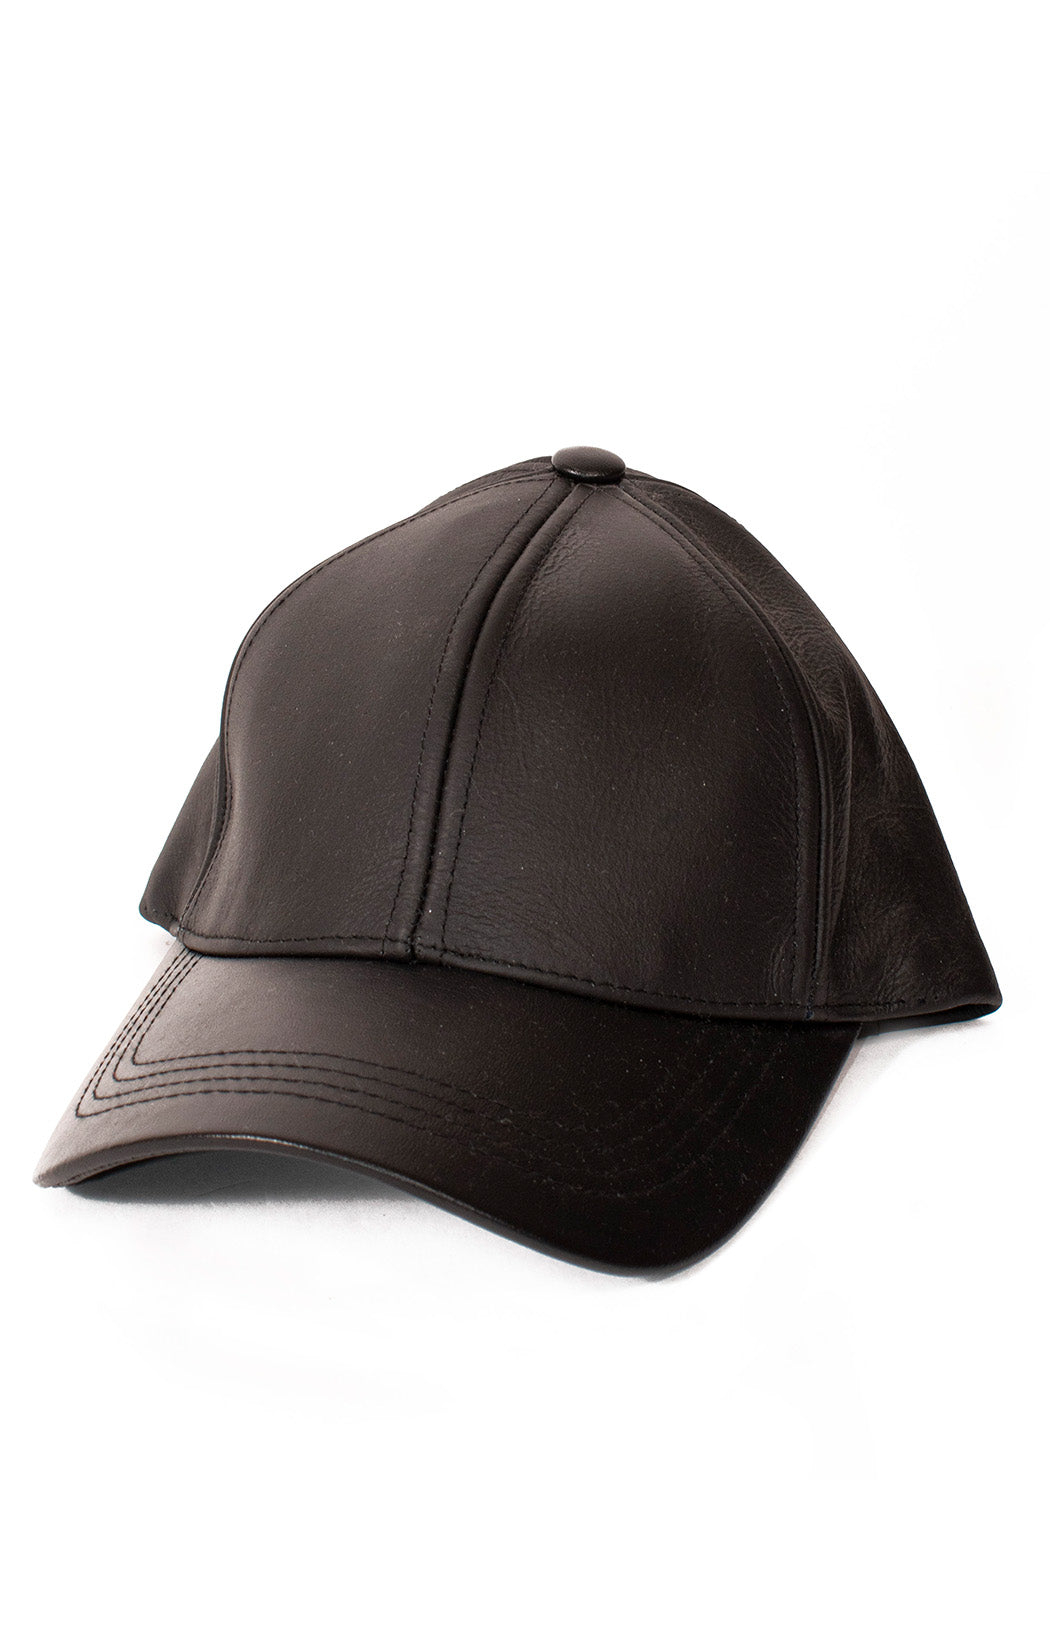 Front view of ELLIOTT Leather baseball hat Size: 7 3/8""